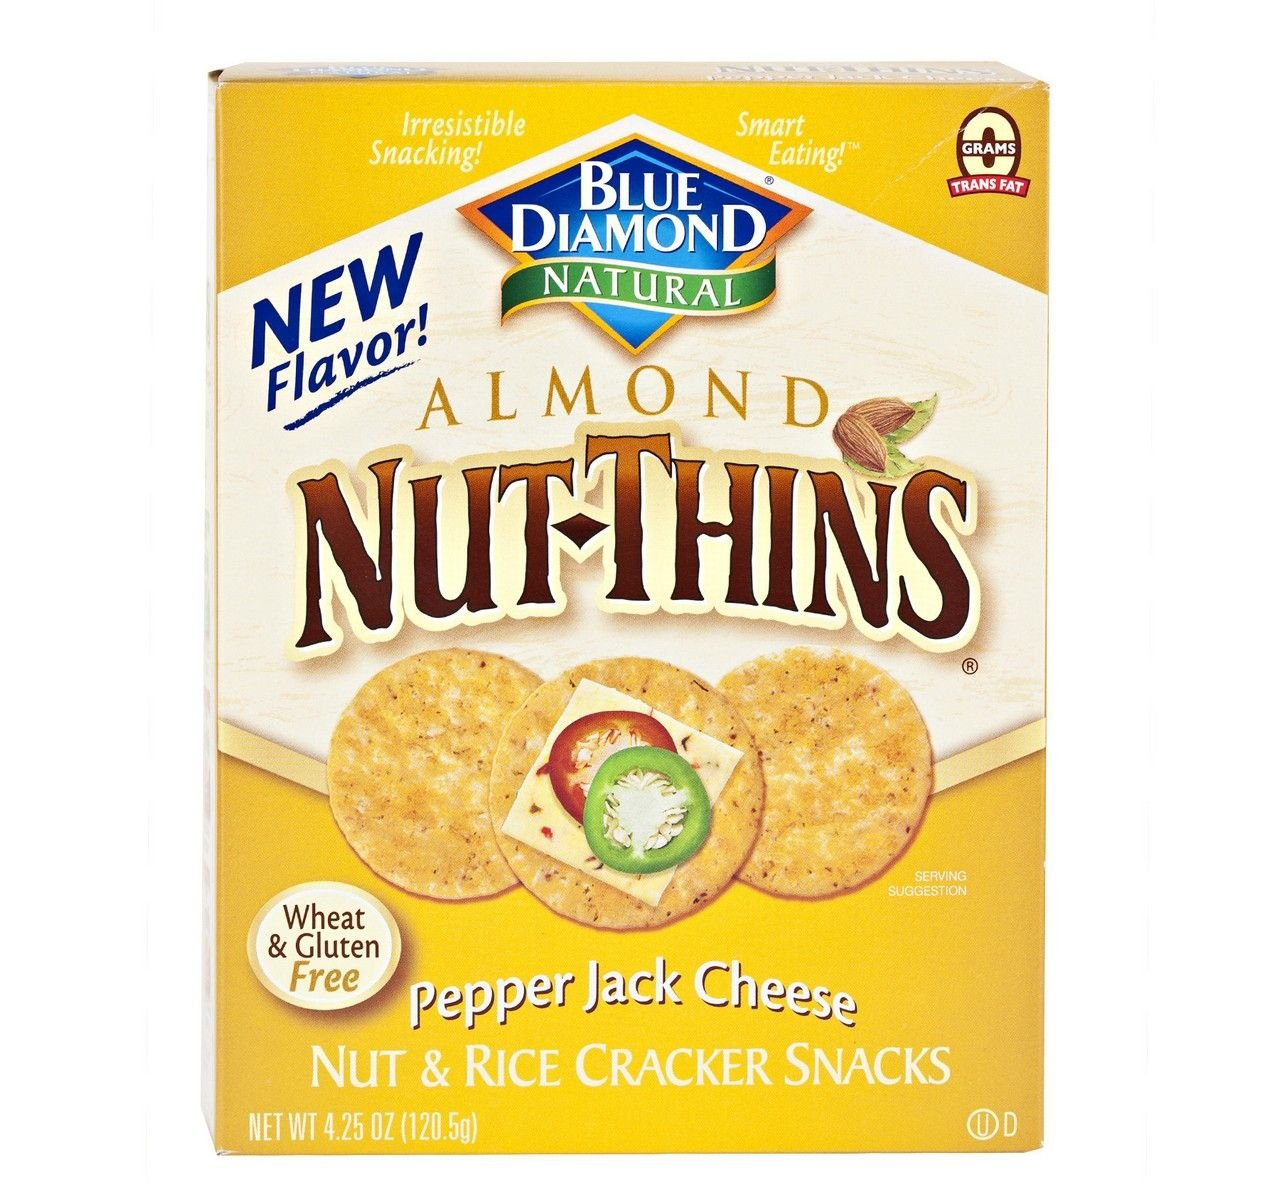 Gluten Ranking TOP18 Free Courier shipping free Almond Nut-Thins Cracker Pepper Jack Cheese Snacks